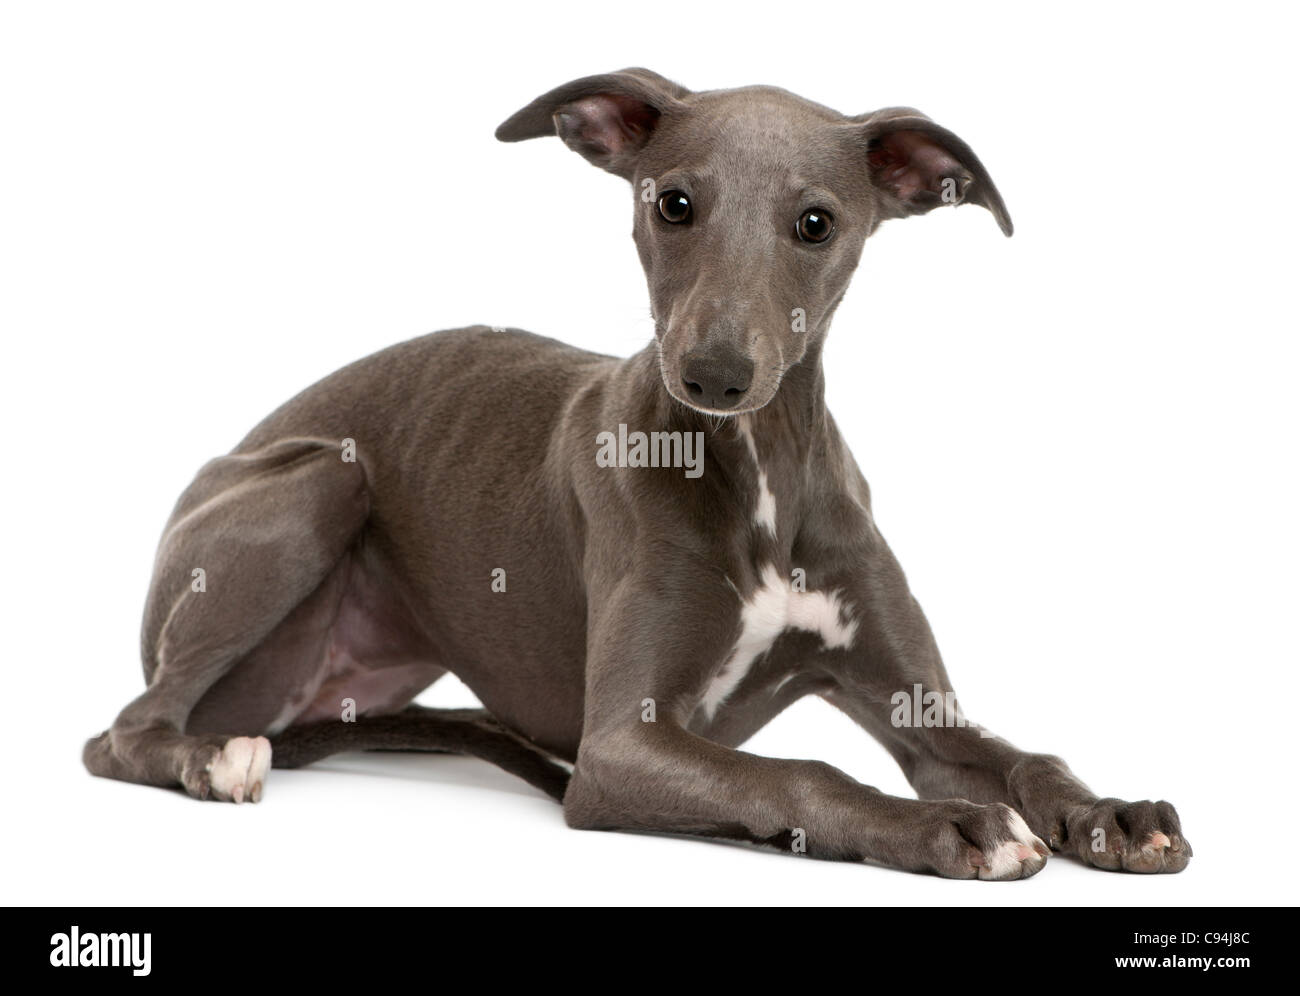 Whippet puppy, 6 months old, lying in front of white background - Stock Image